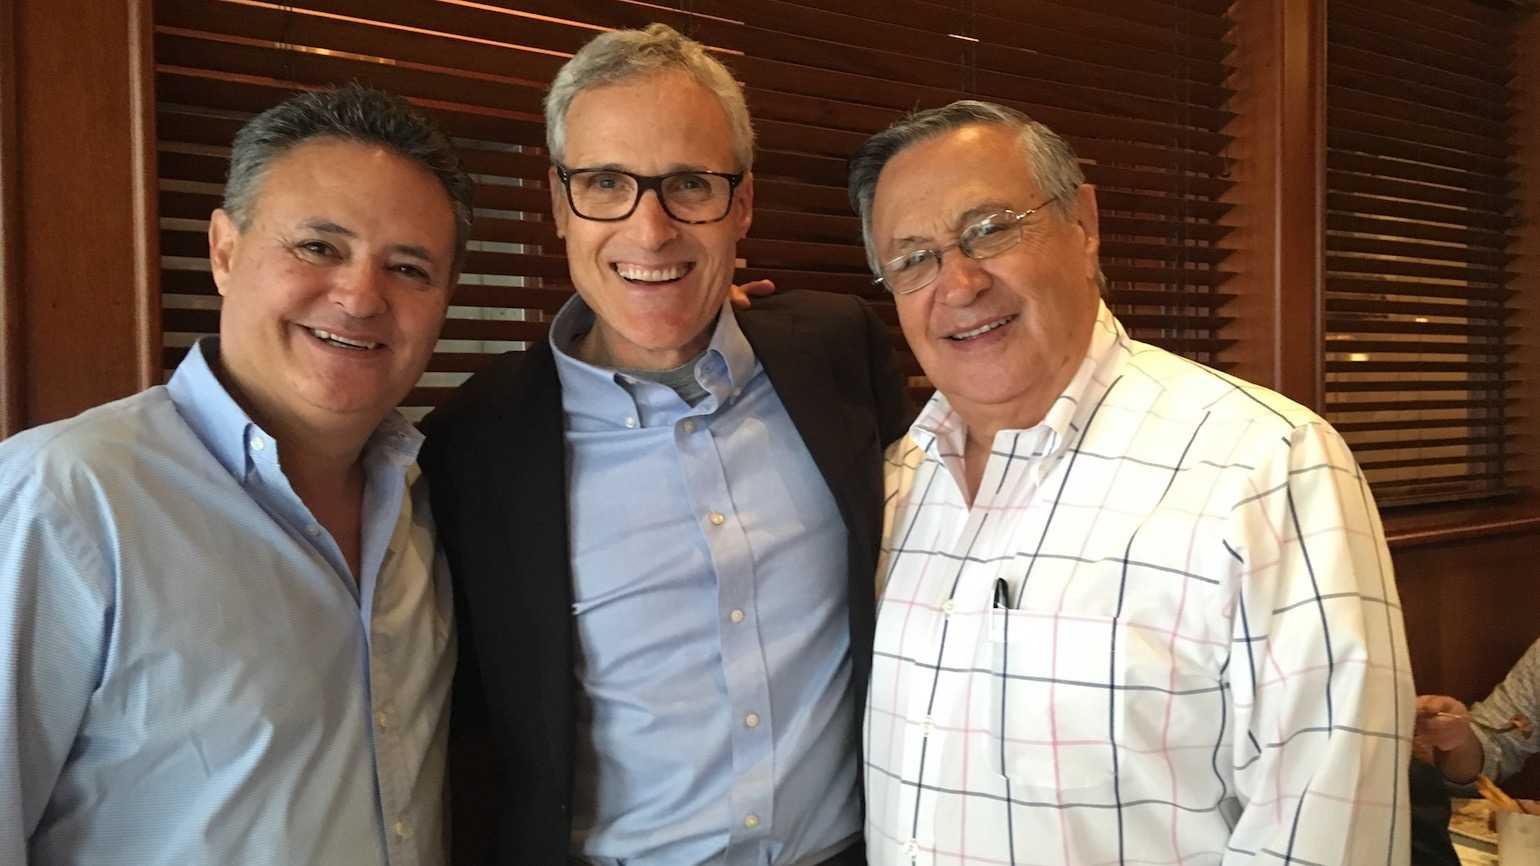 Left to right, Jorge Jarrin, Rick Hamlin, Jaime Jarrin